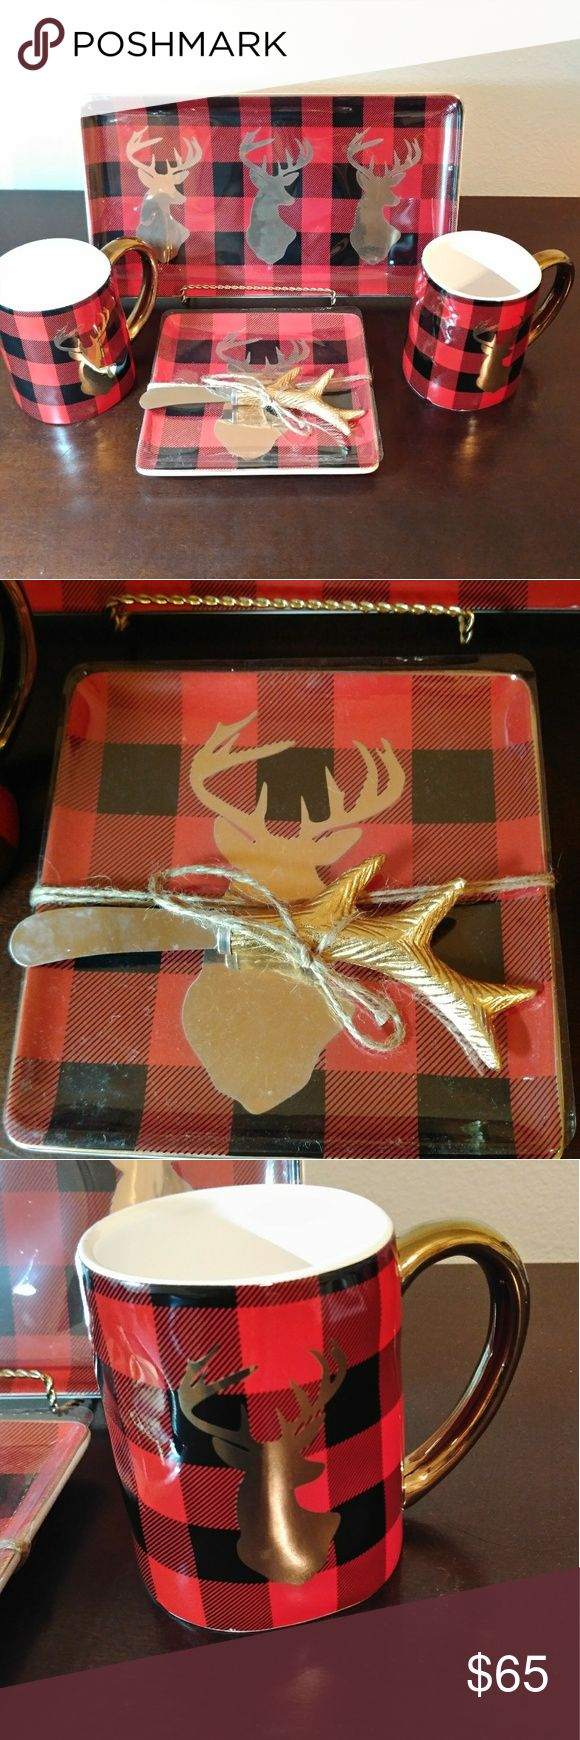 Reindeer plaid Christmas set Adorable serving set includes a platter, cheese plate with knife, and 2 mugs. Platter and plates come with golden trims! Will make a great addition to your Rae Dunn, cabin, or farmhouse collection. Will ship with care. Other